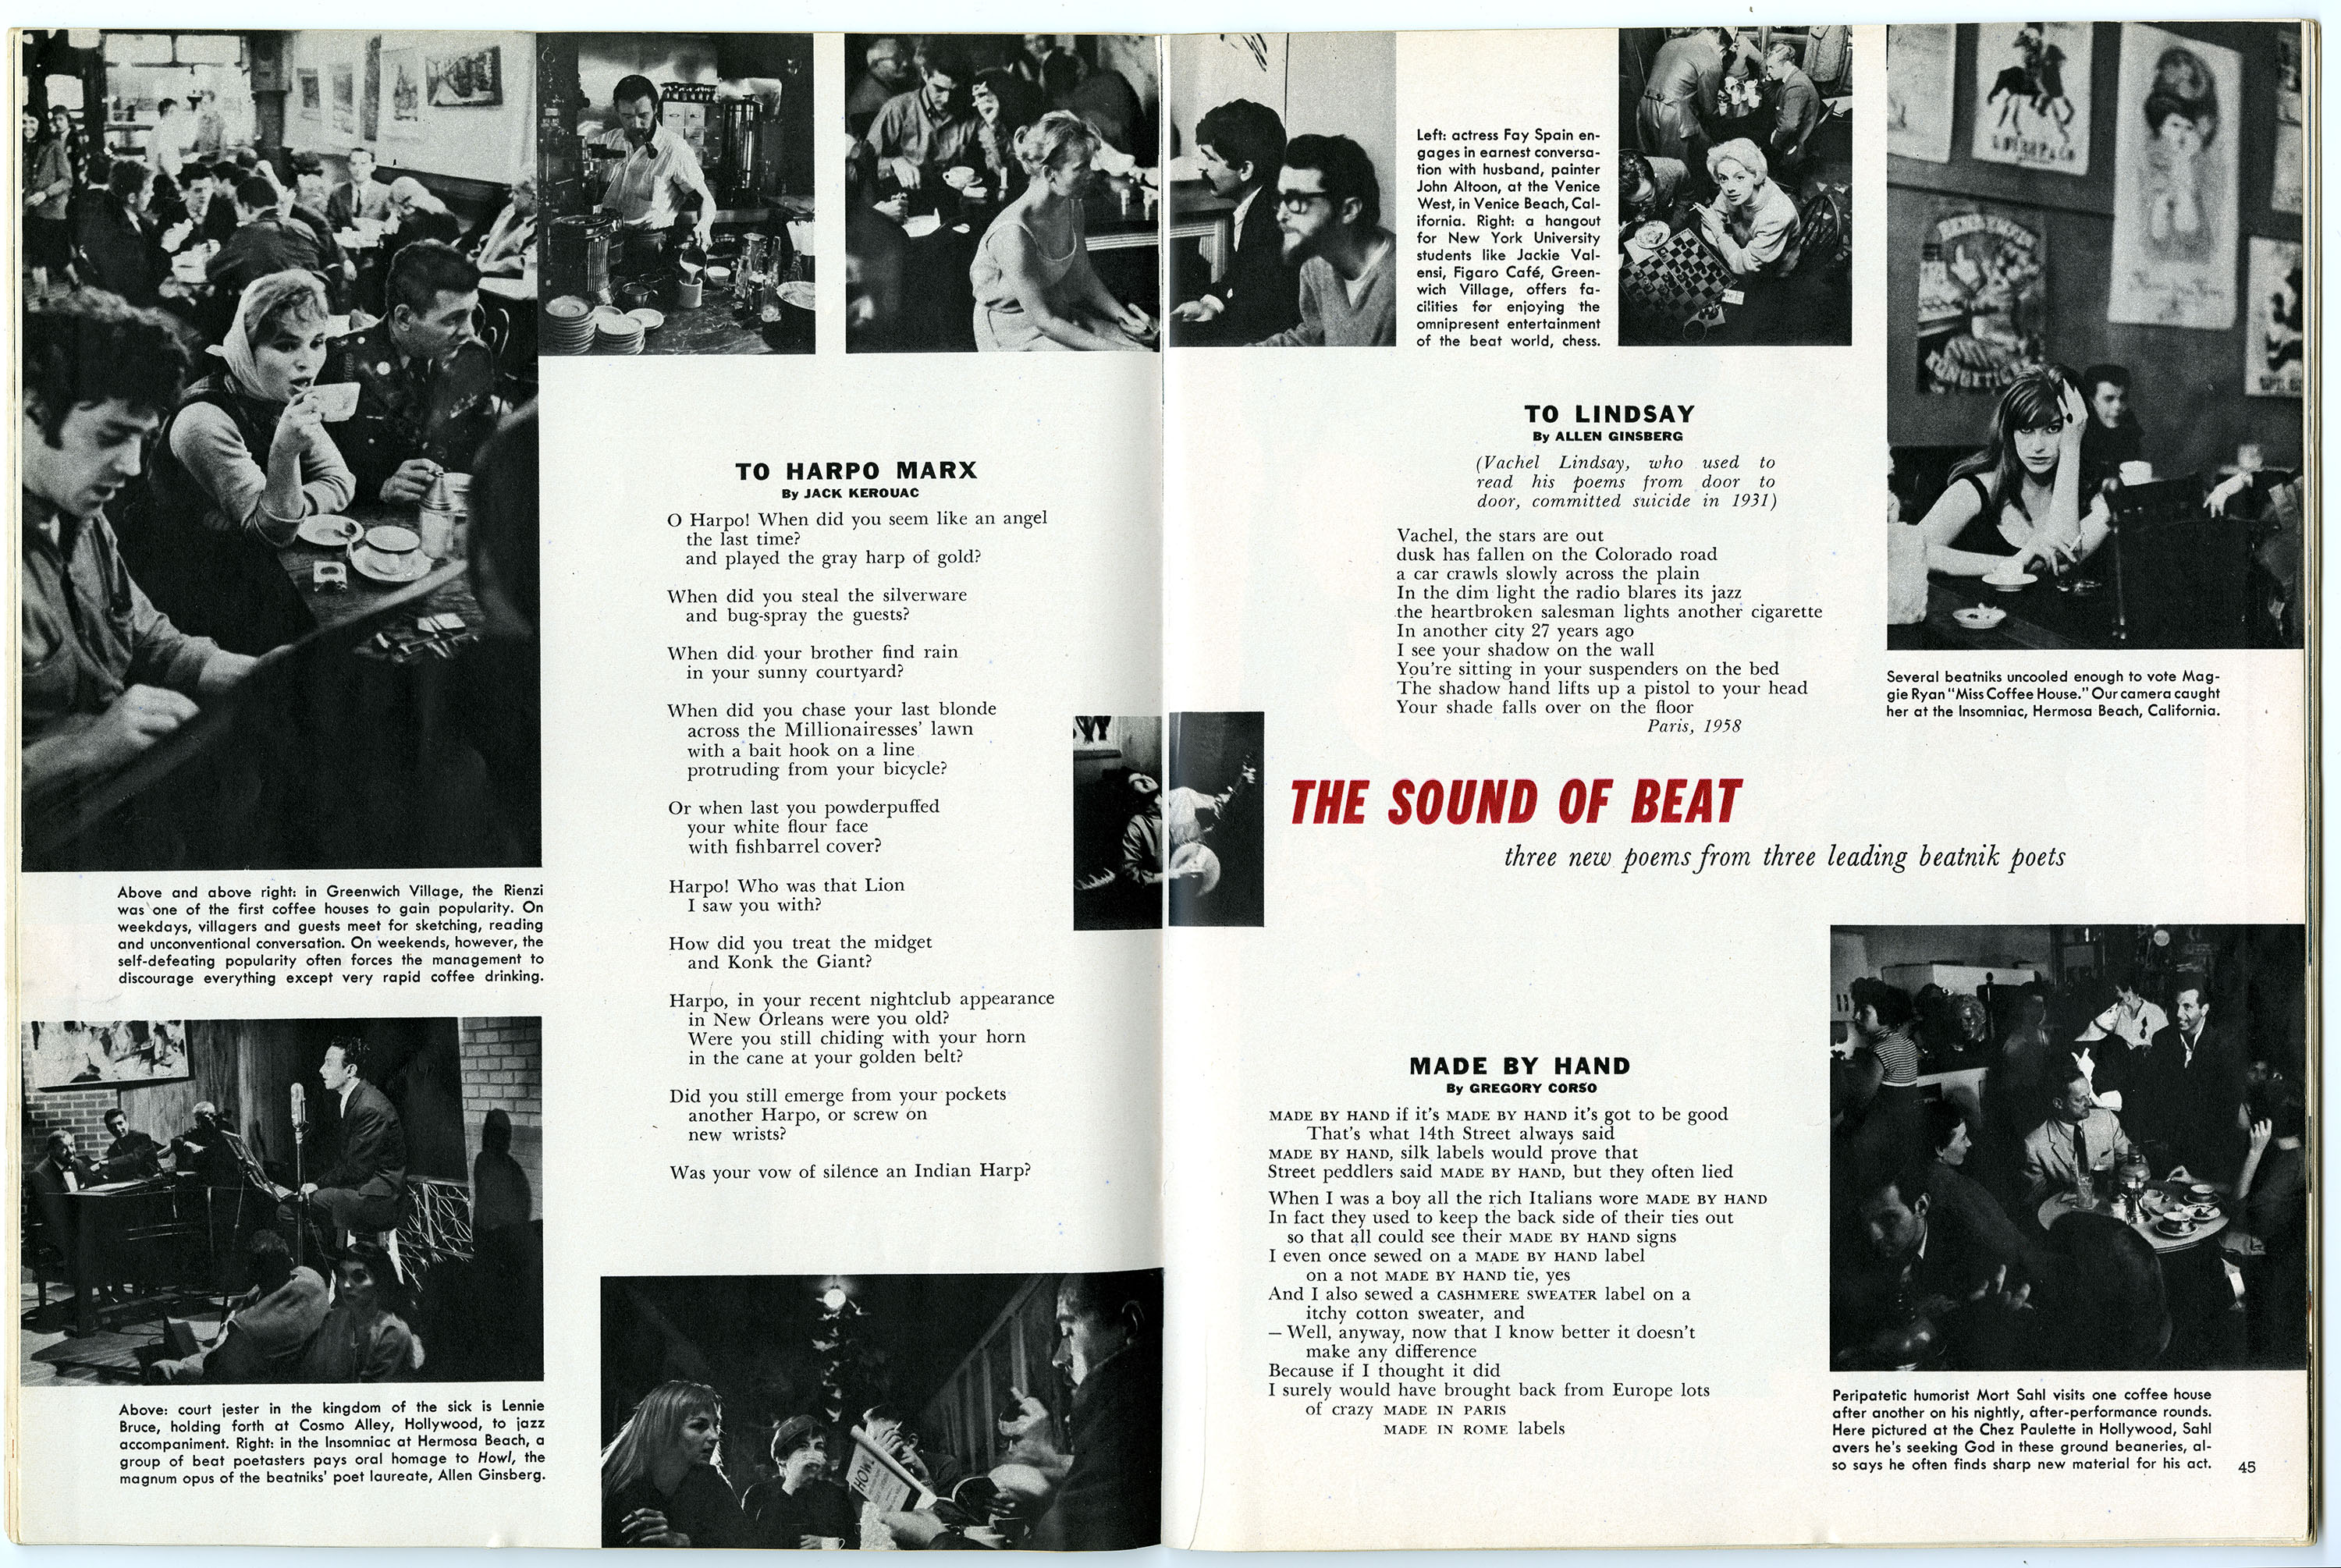 """""""The Sound of Beat,"""" and """"Coffeehouses of America,"""" Playboy. July 1959"""